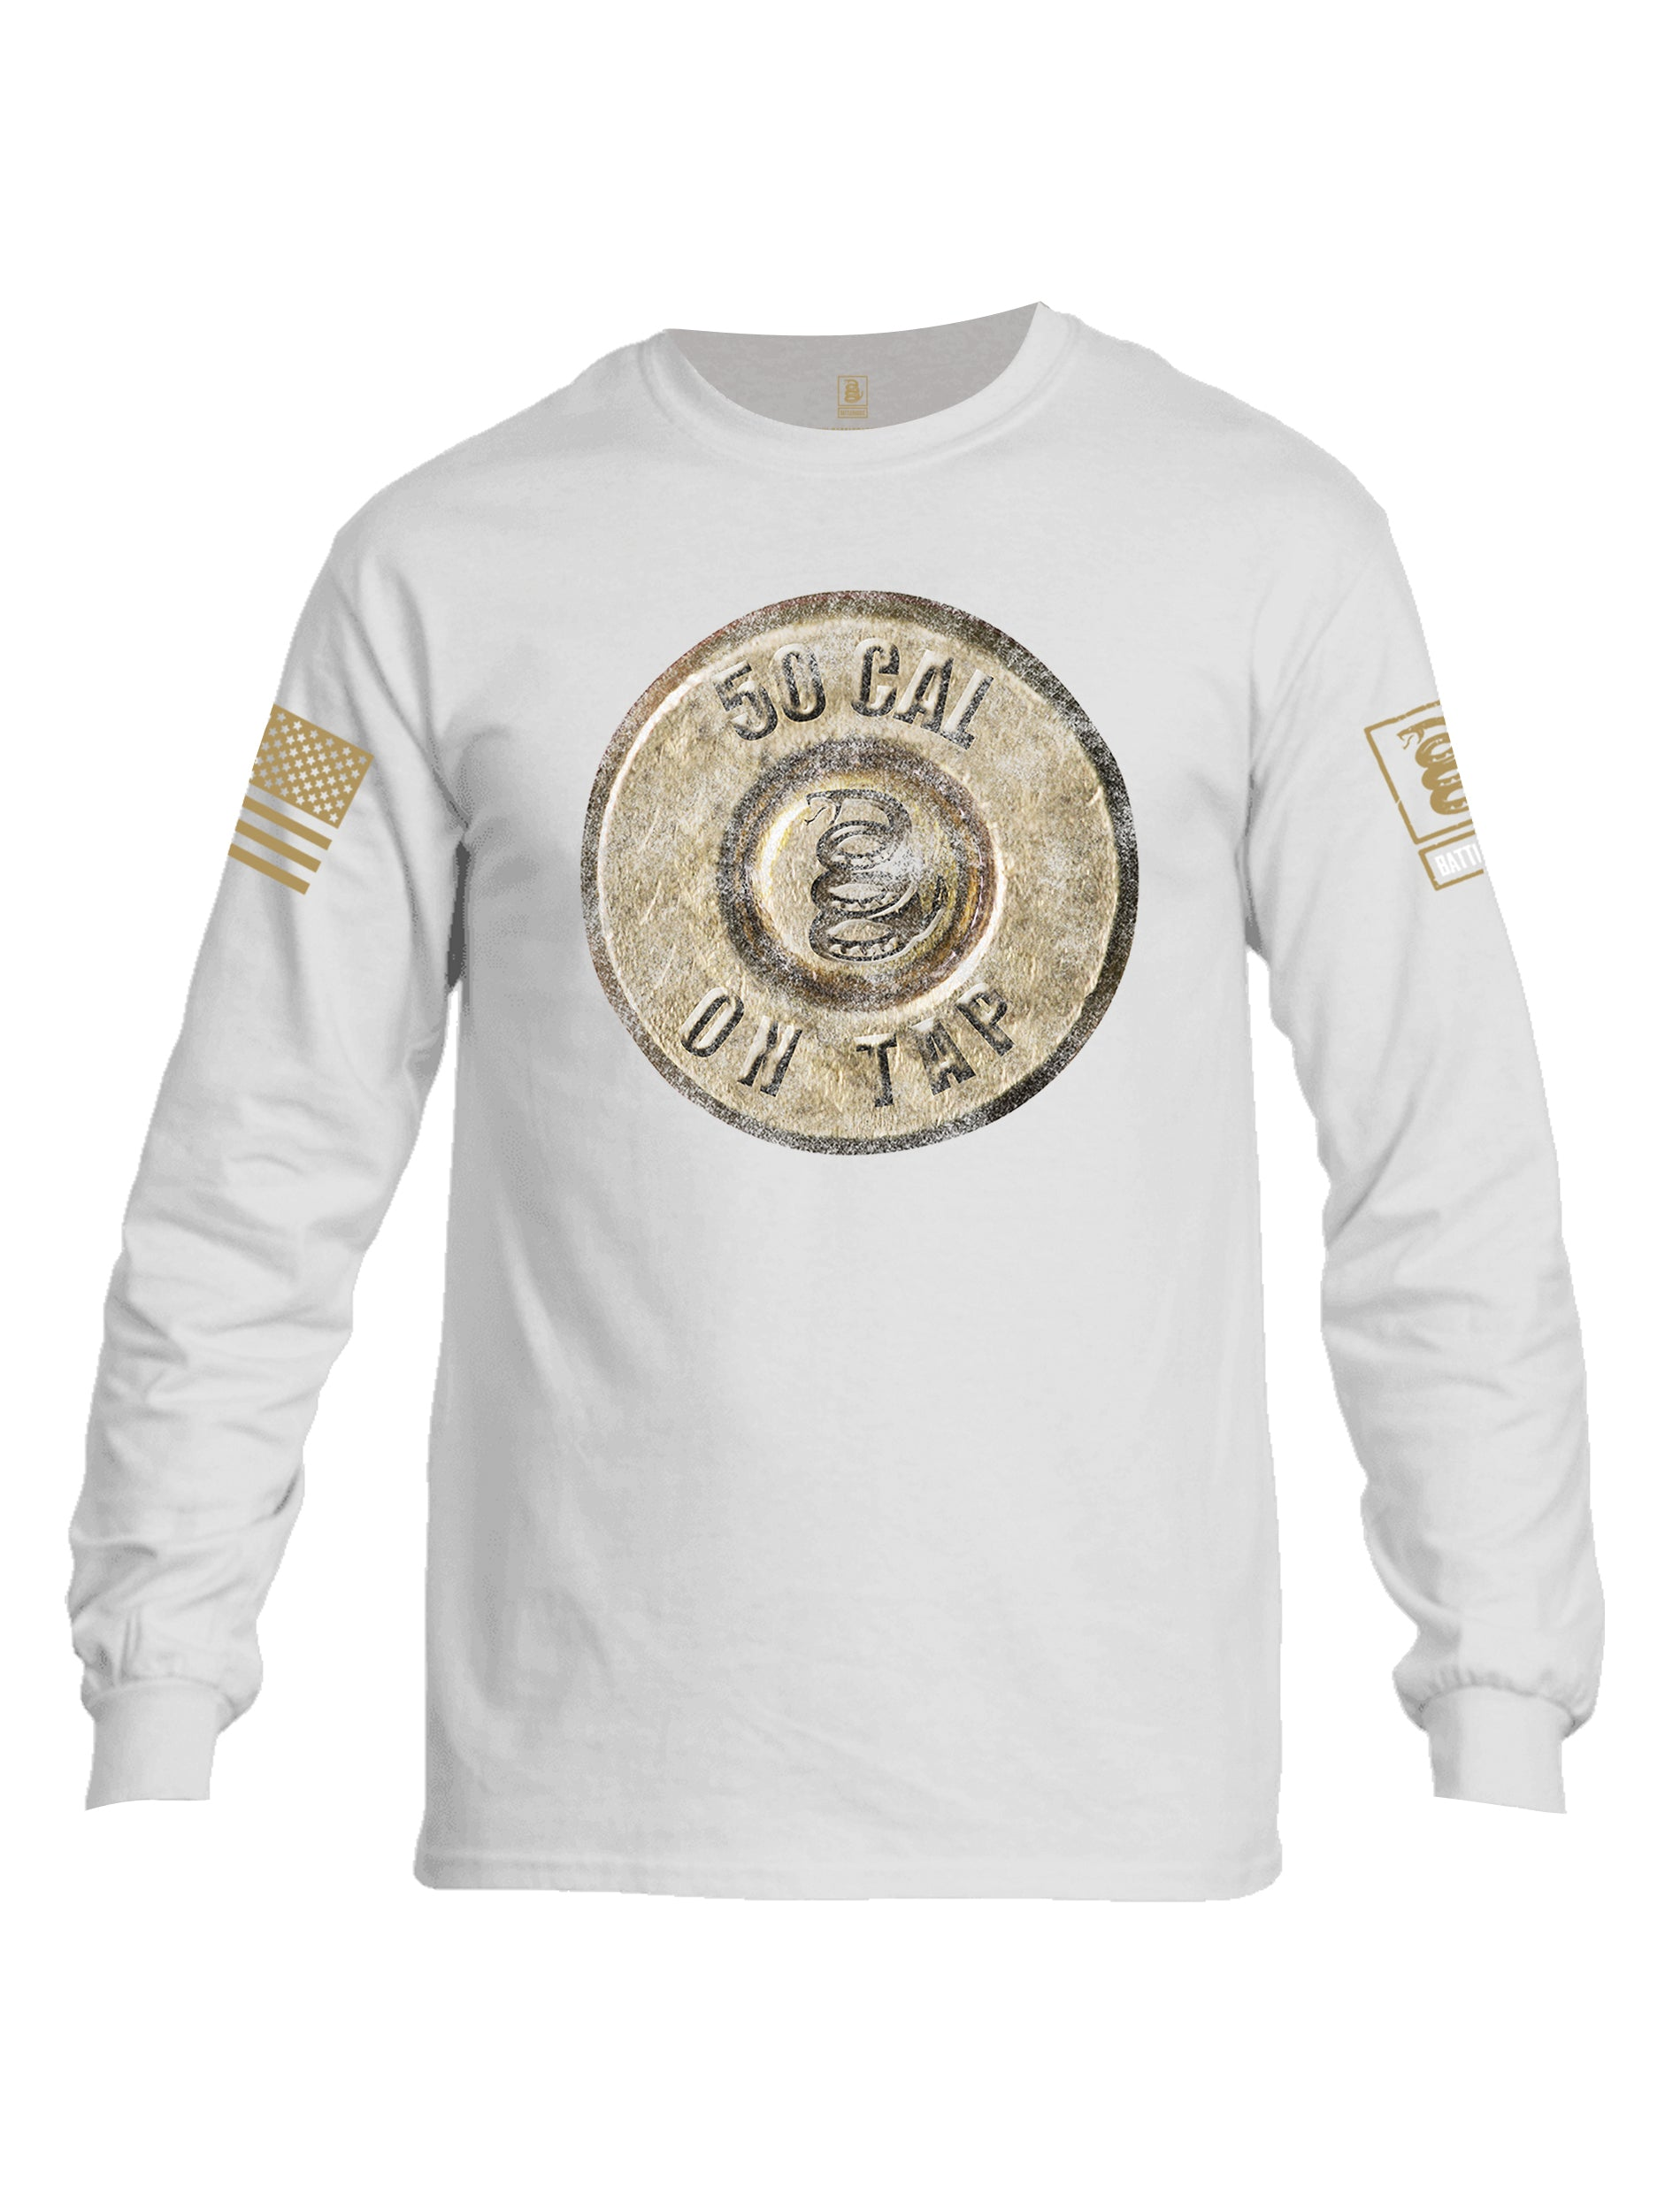 Battleraddle 50 Cal On Tap Brass Sleeve Print Mens Cotton Long Sleeve Crew Neck T Shirt Military Green